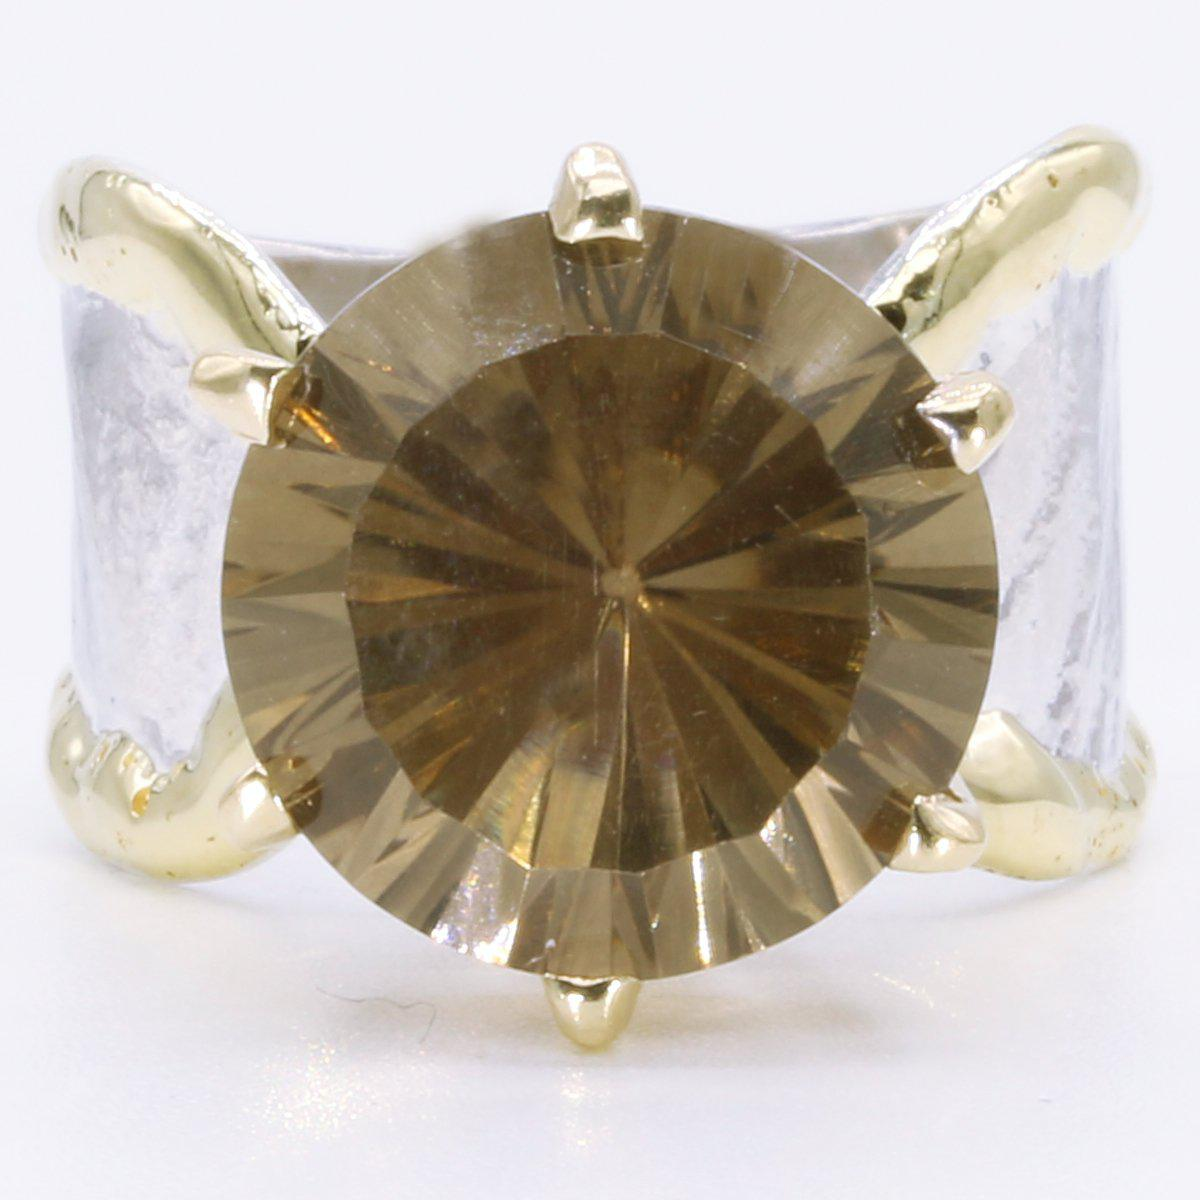 14K Gold & Crystalline Silver Smoky Quartz 14mm Ring - 35165-Fusion Designs-Renee Taylor Gallery